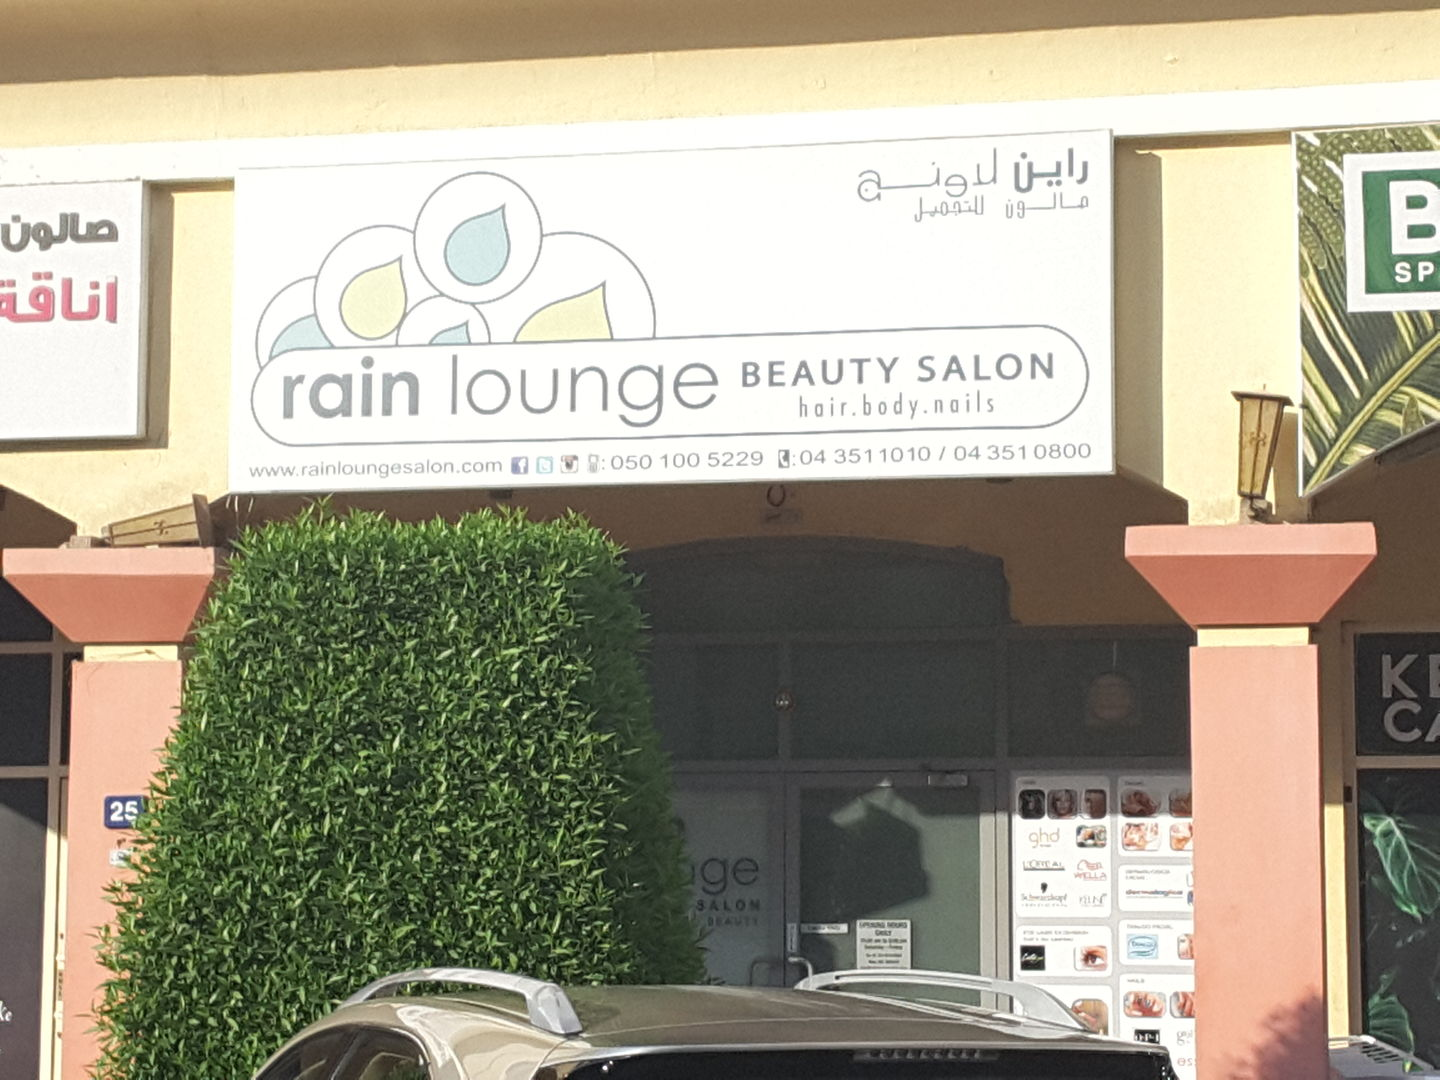 HiDubai-business-rain-lounge-beauty-salon-beauty-wellness-health-beauty-salons-al-raffa-al-raffa-dubai-2